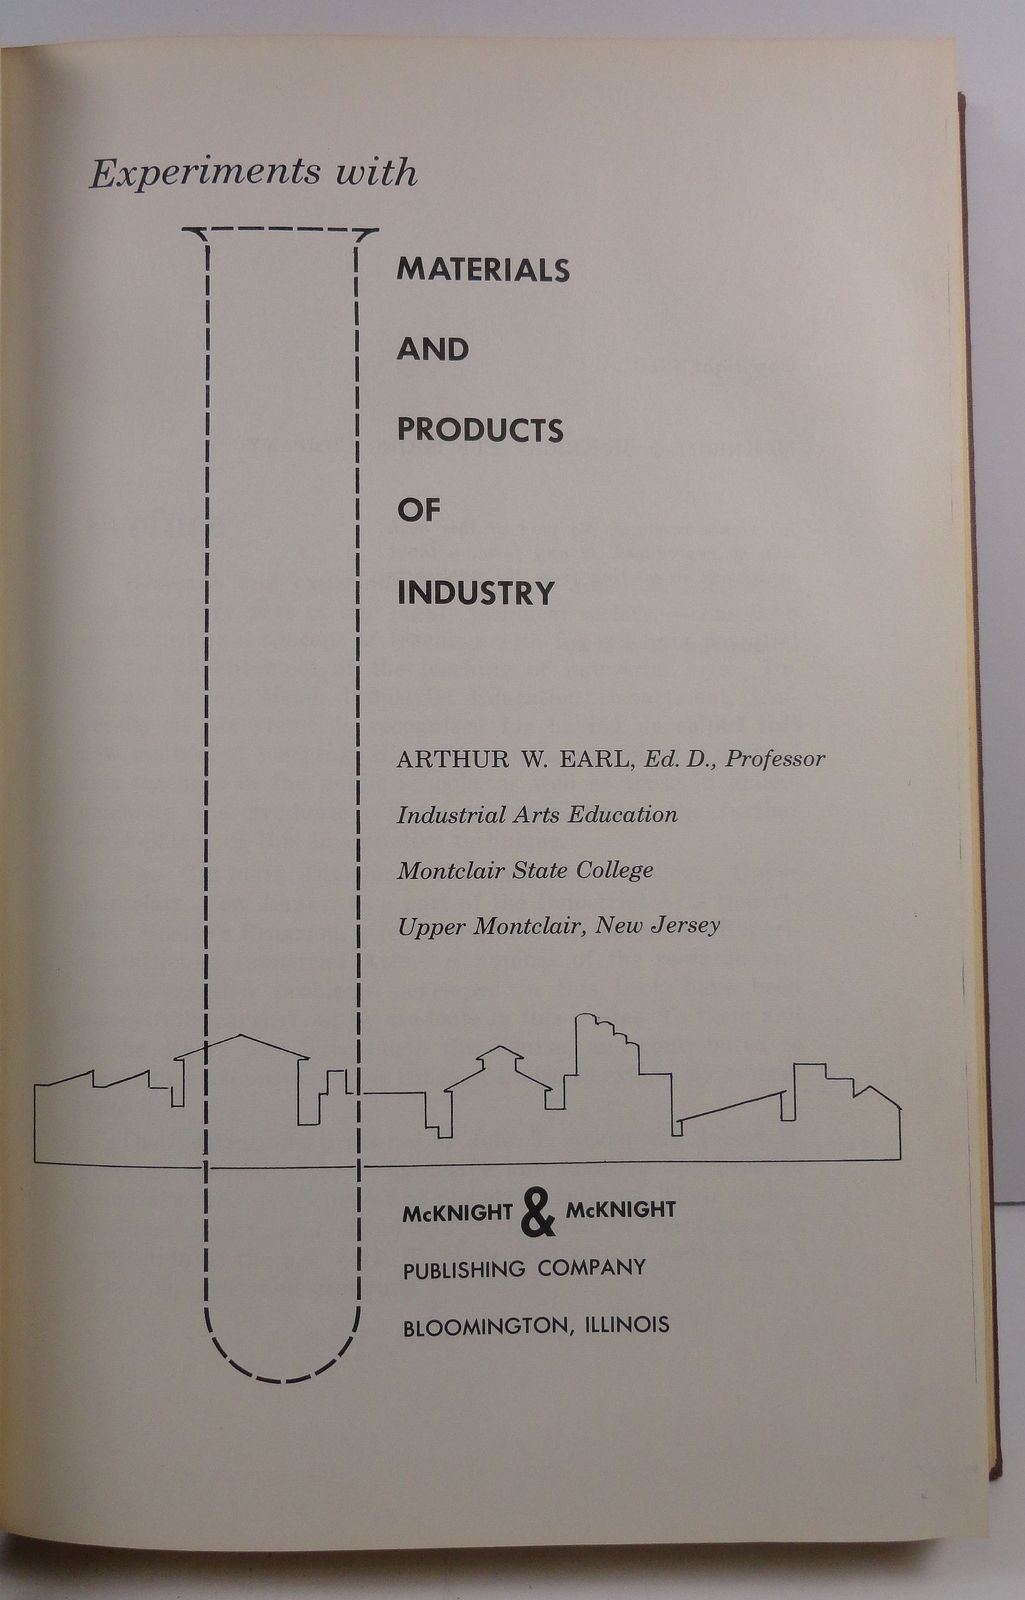 Experiments with Materials of Industry Arthur W. Earl 1960